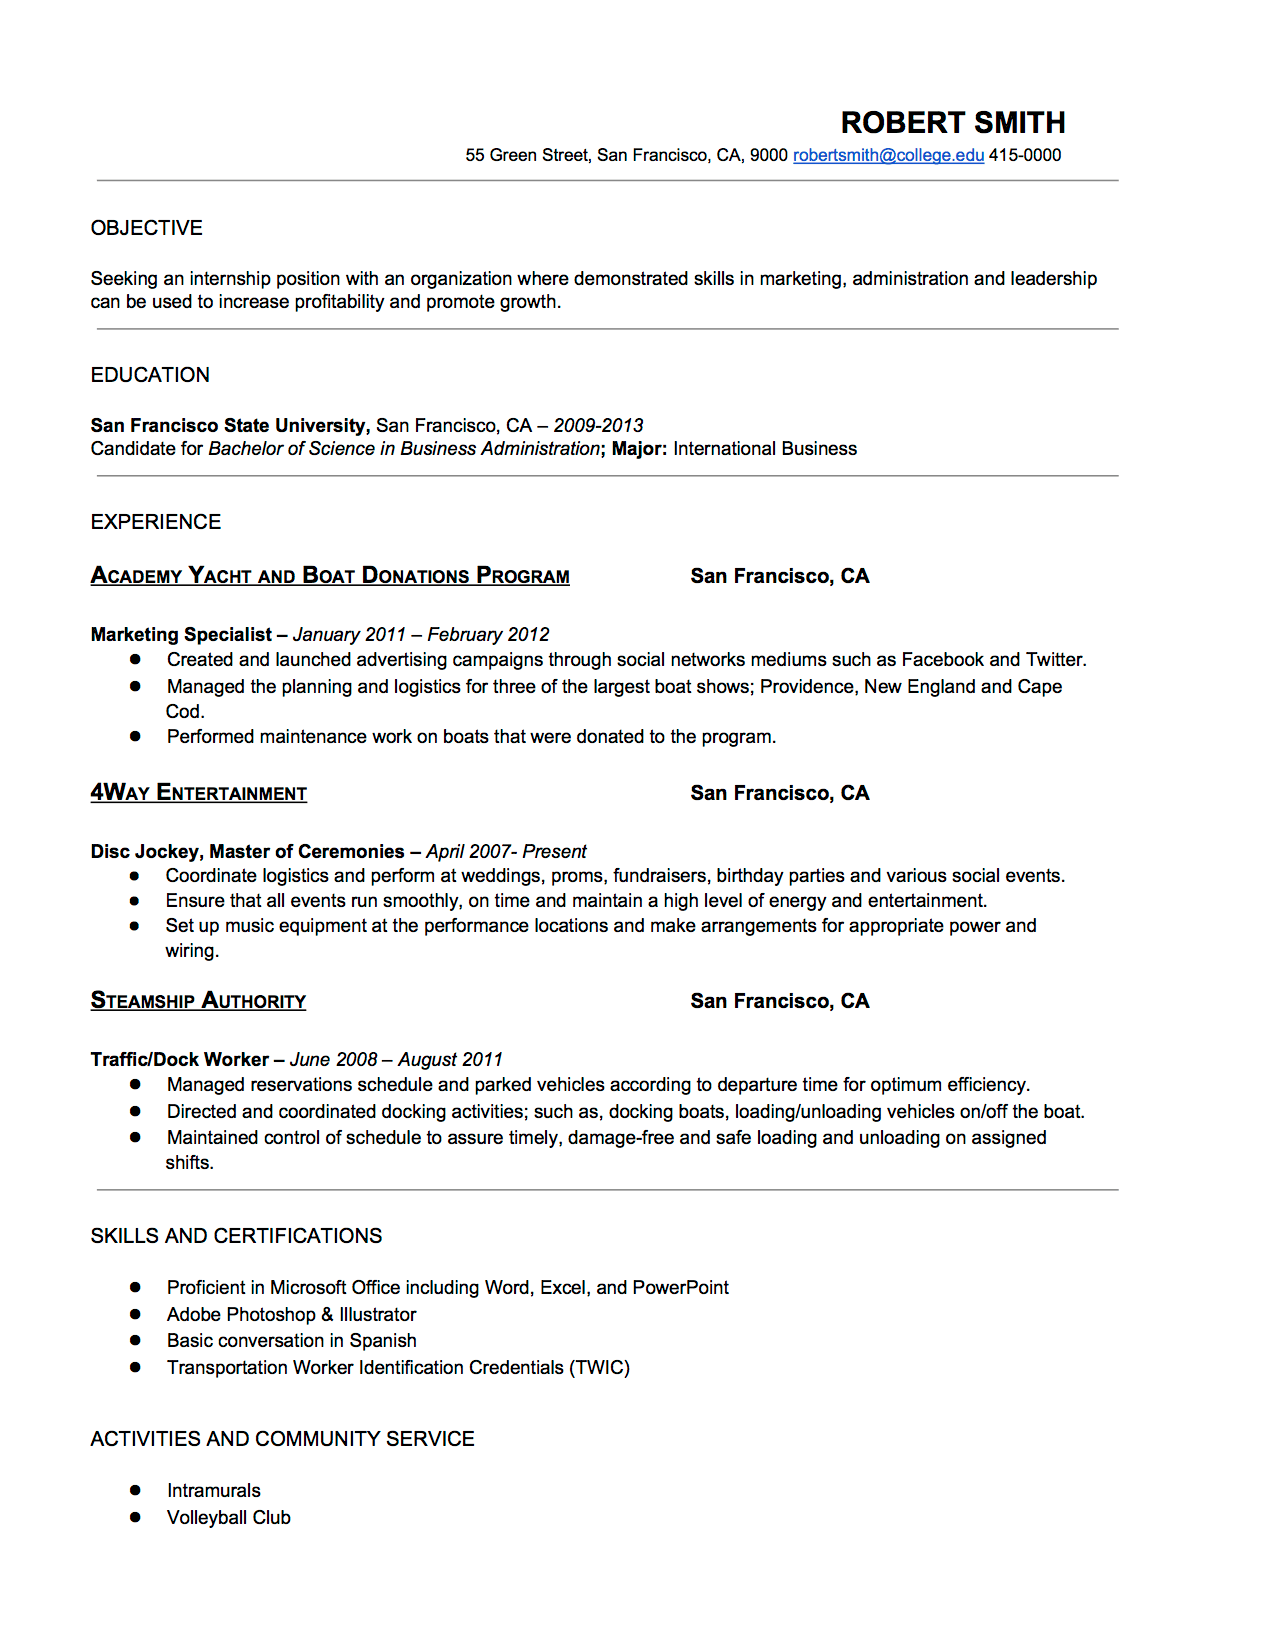 Show some resume formats